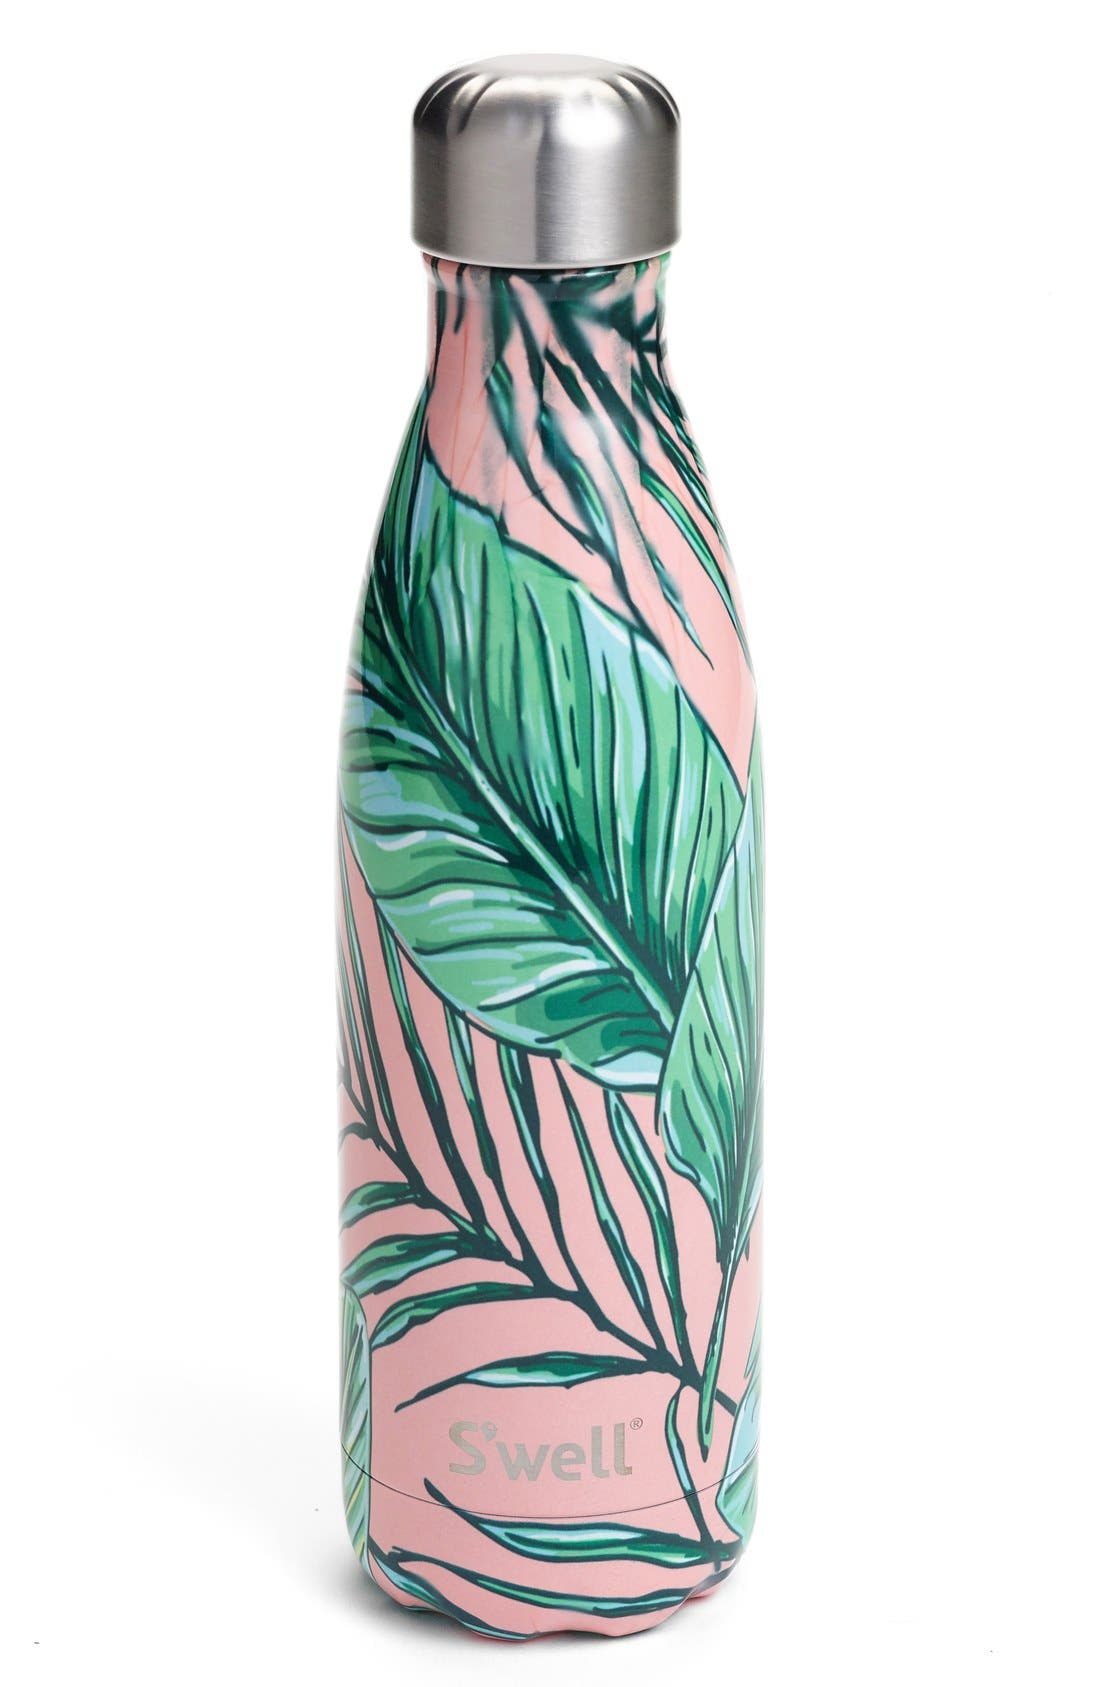 Main Image - S'well Palm Beach Stainless Steel Water Bottle